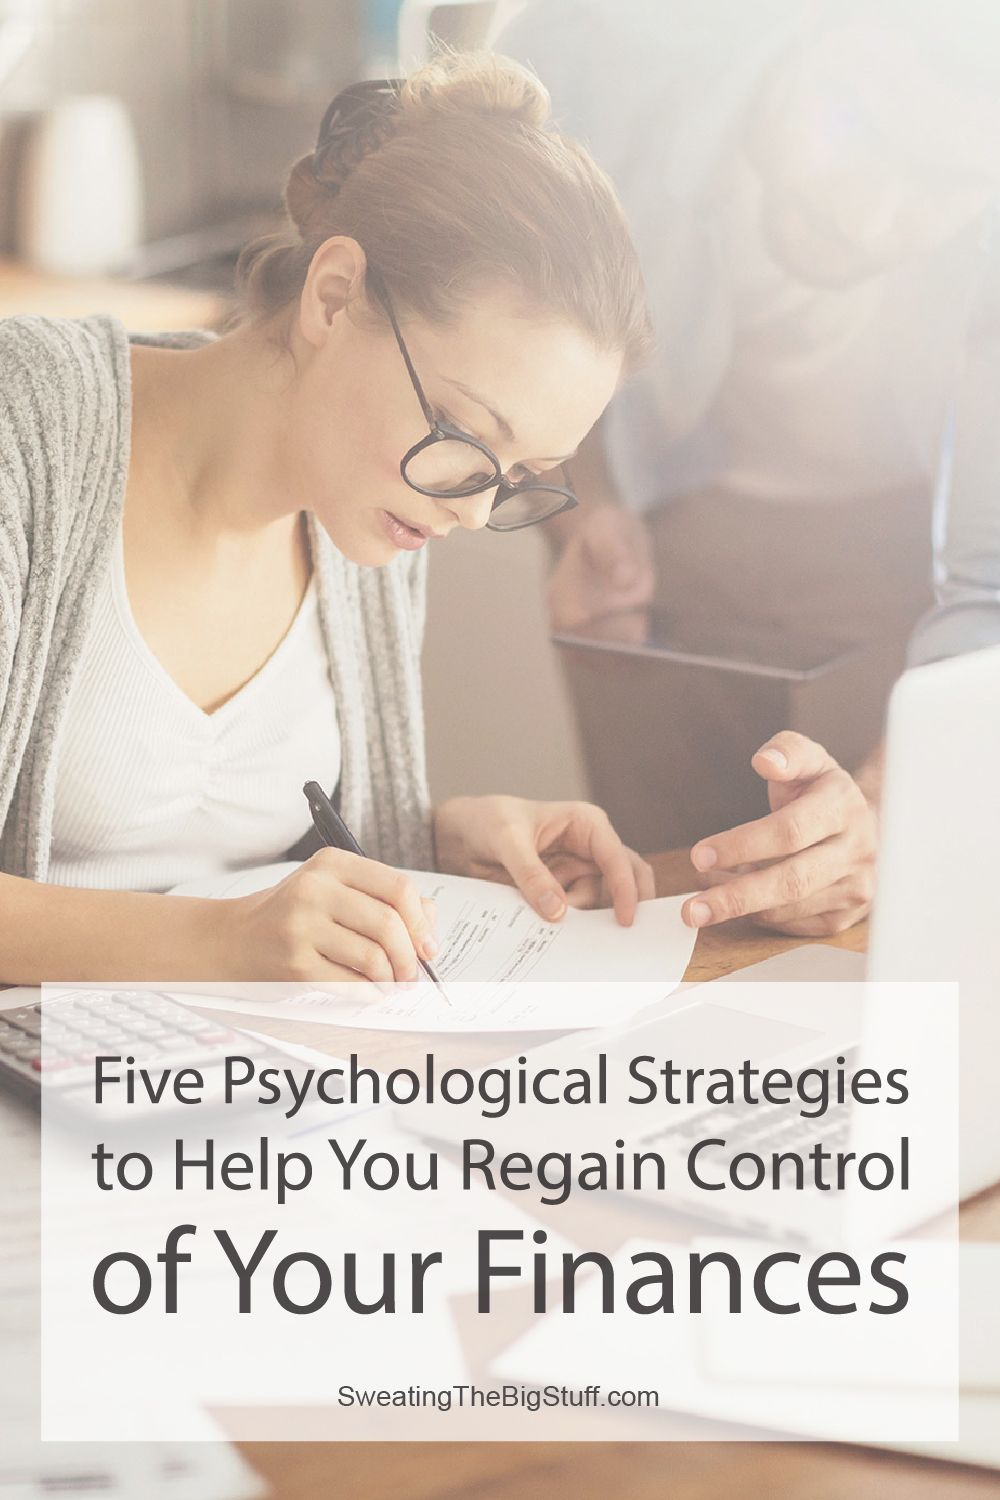 Five Psychological Strategies to Help You Regain Control of Your Finances